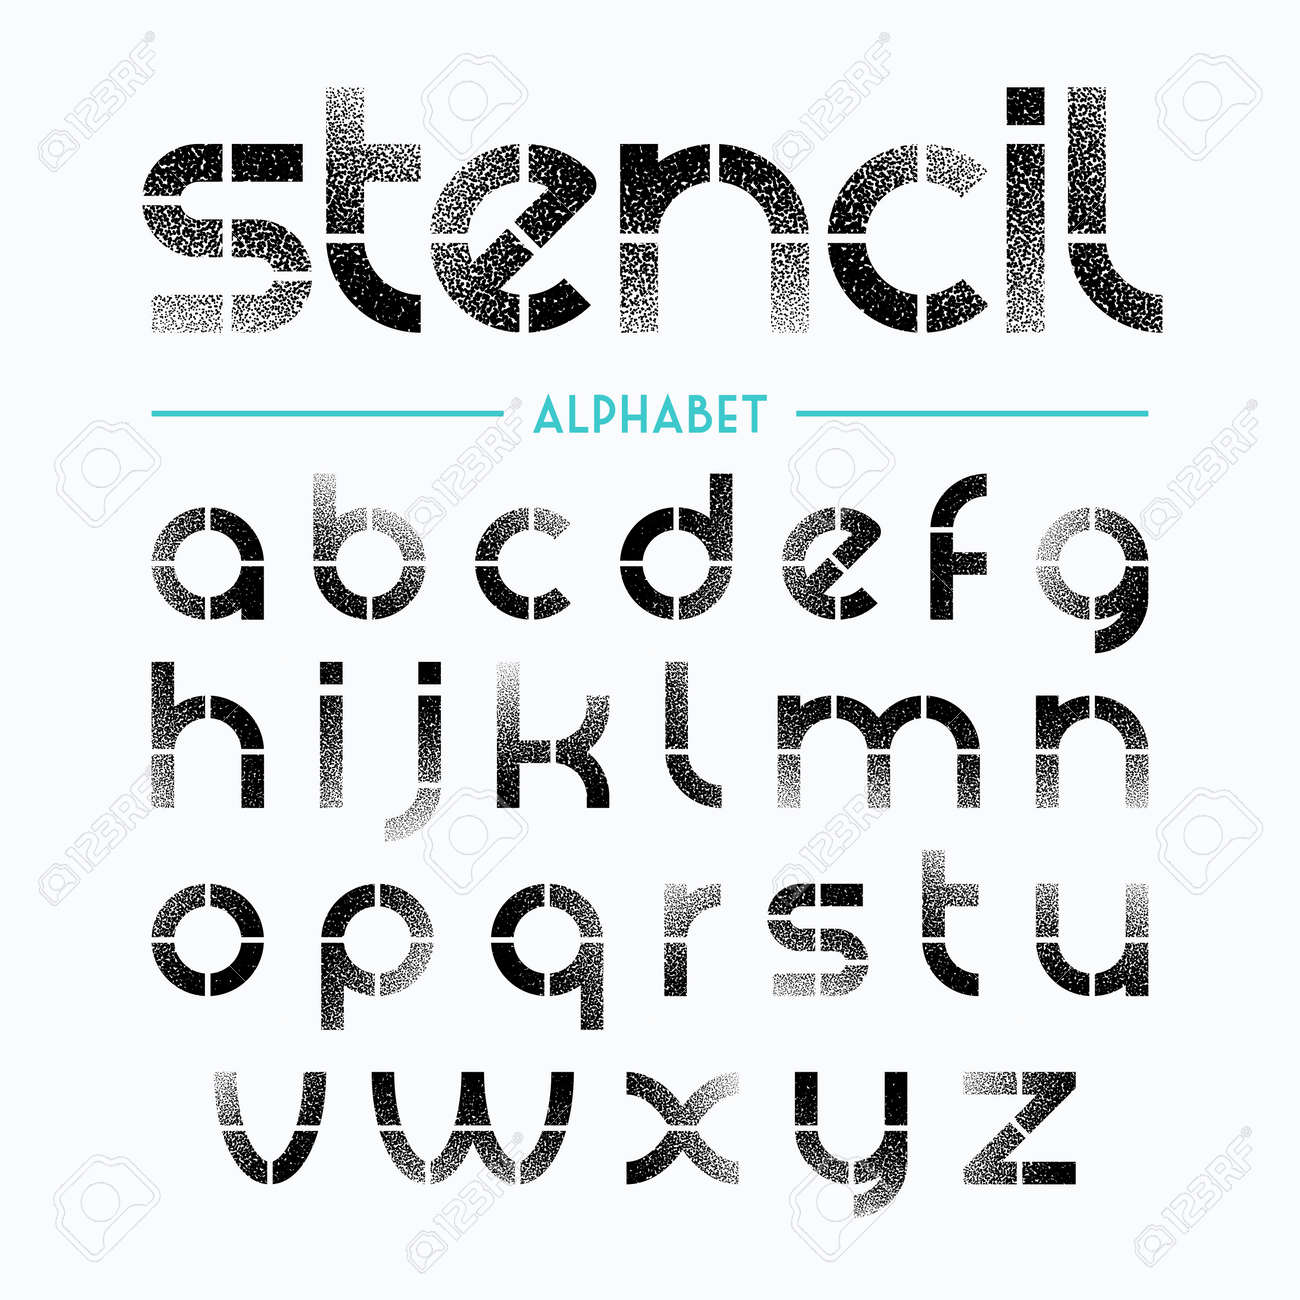 Spray painted stencil alphabet letters royalty free cliparts spray painted stencil alphabet letters stock vector 40977523 spiritdancerdesigns Images